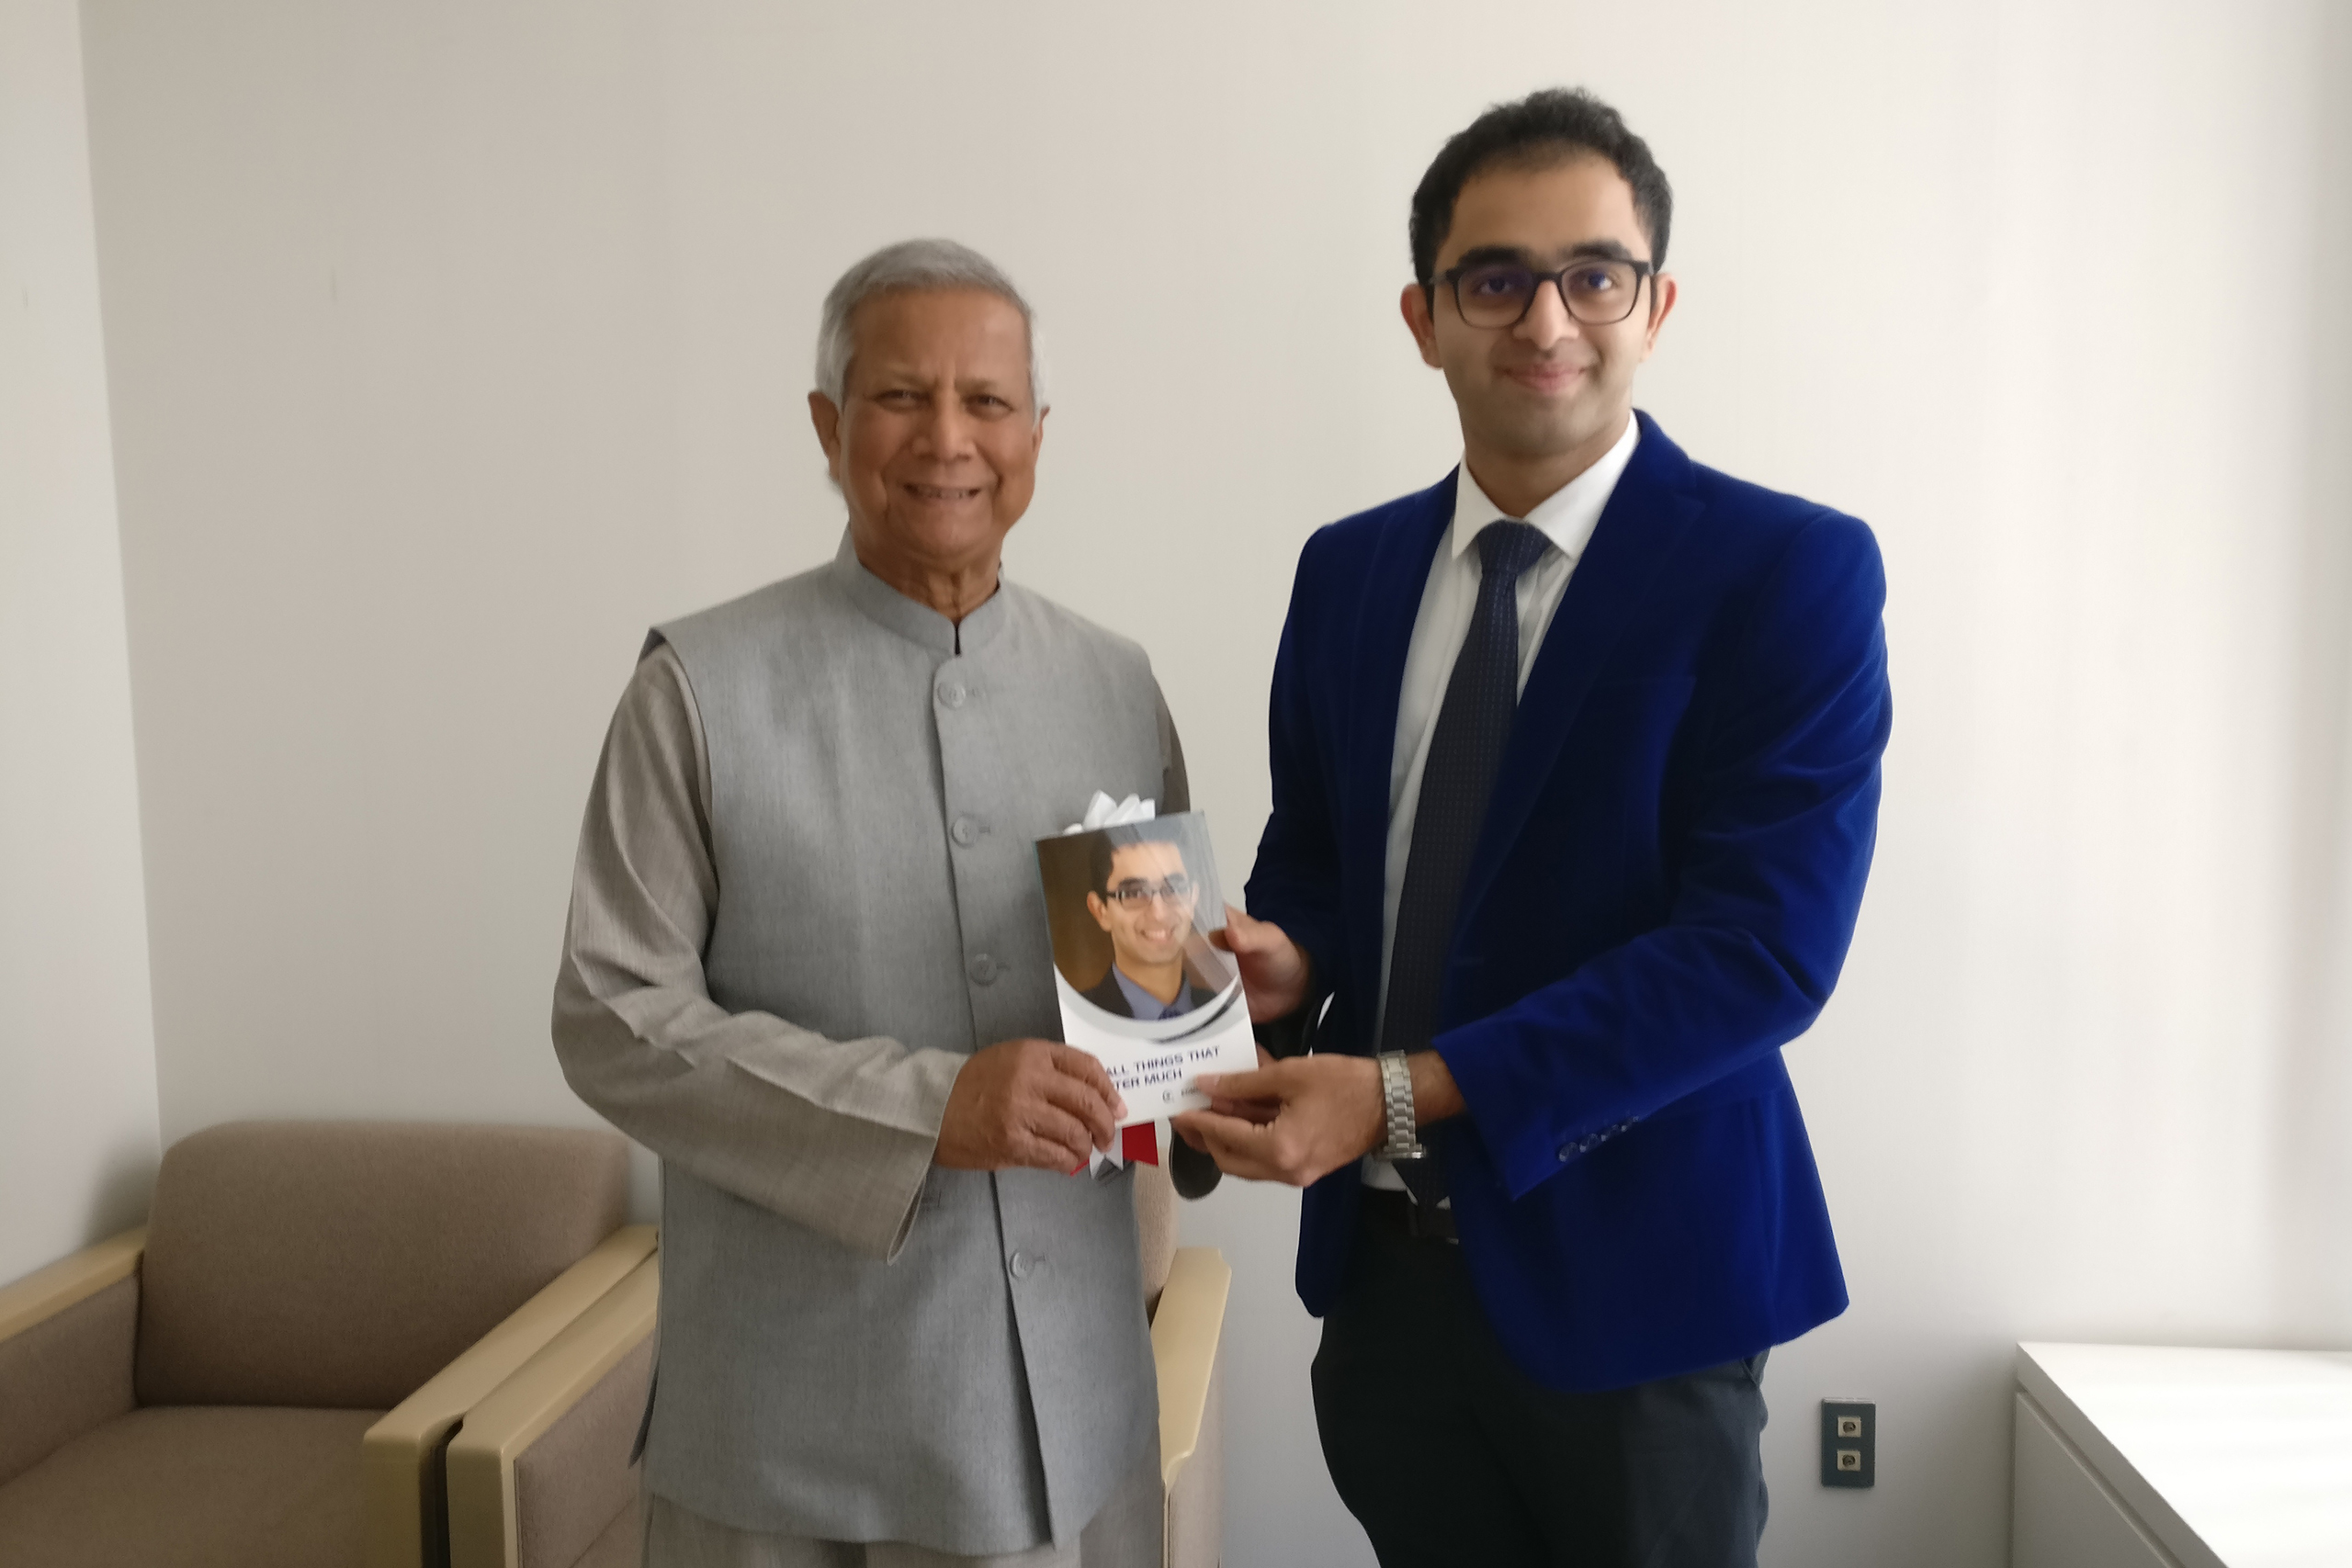 Dr. Edmond with Noble Laureaute Prof. Muhammad Yunus, at the UN University in Japan.